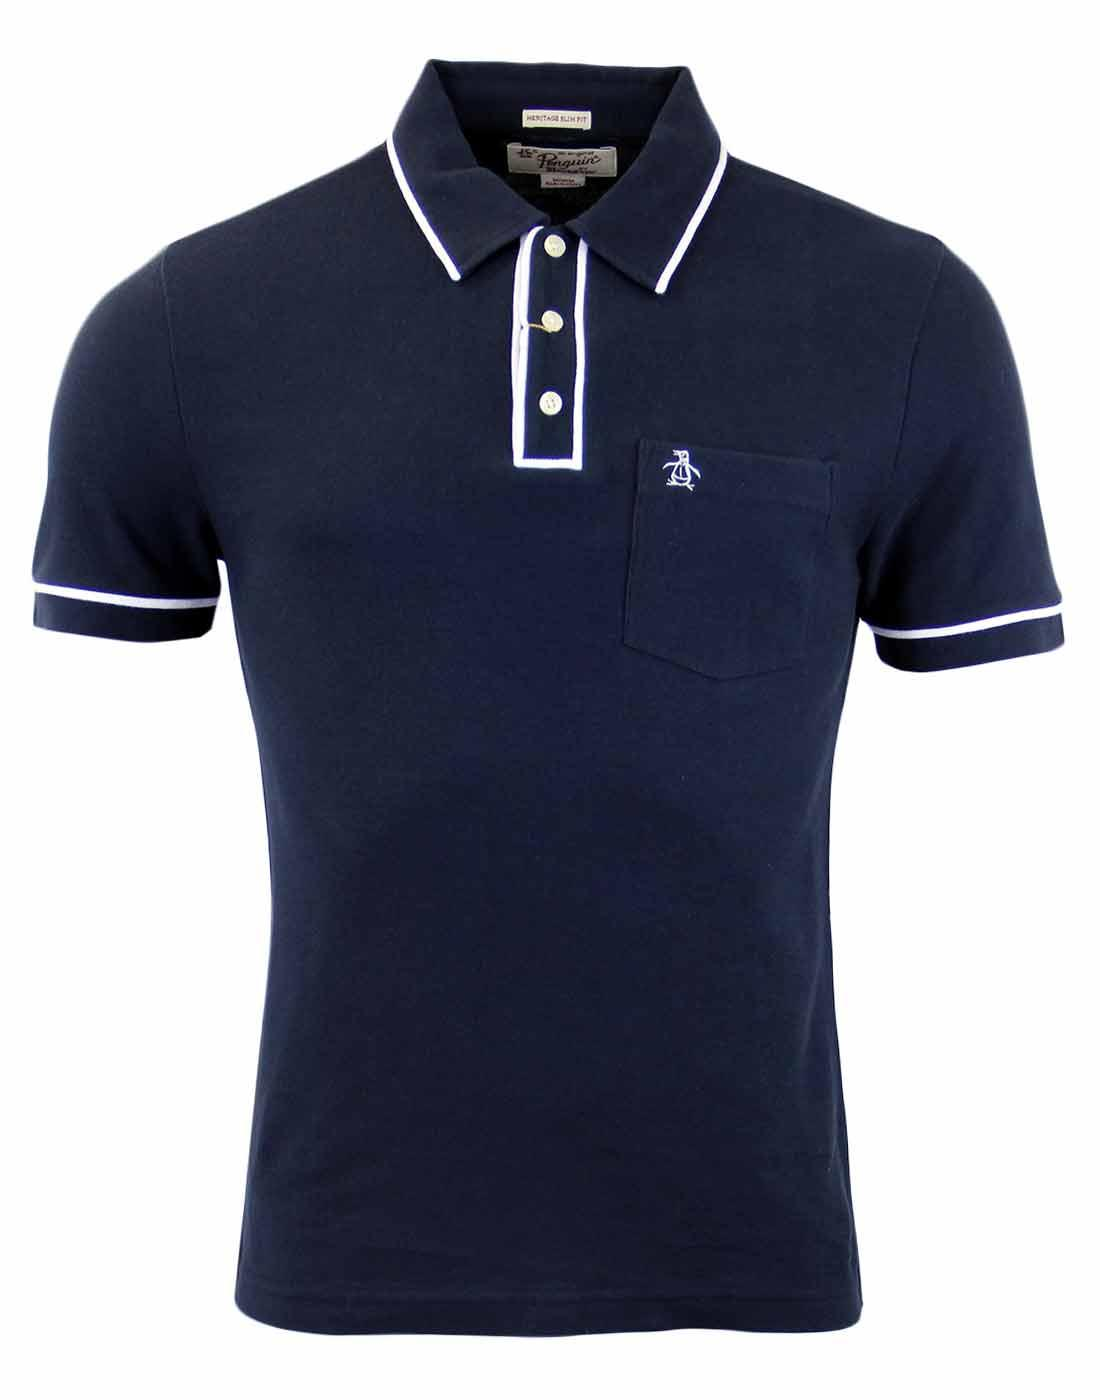 Earl ORIGINAL PENGUIN Retro Mod Tipped Polo Top DS